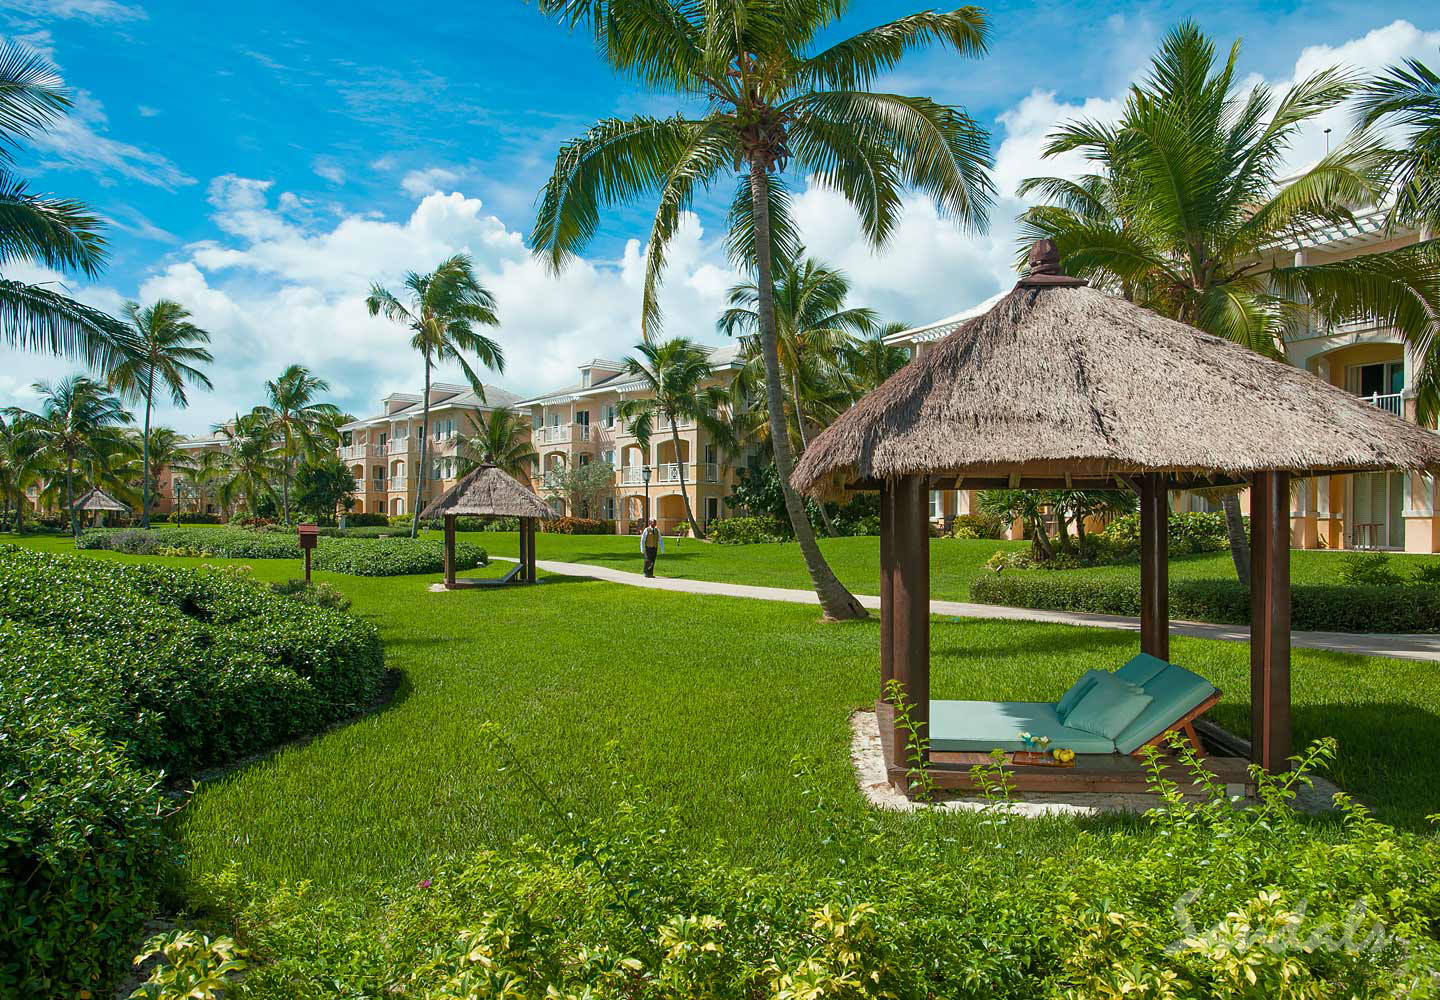 Travel Agency All-Inclusive Resort Sandals Emerald Bay 075